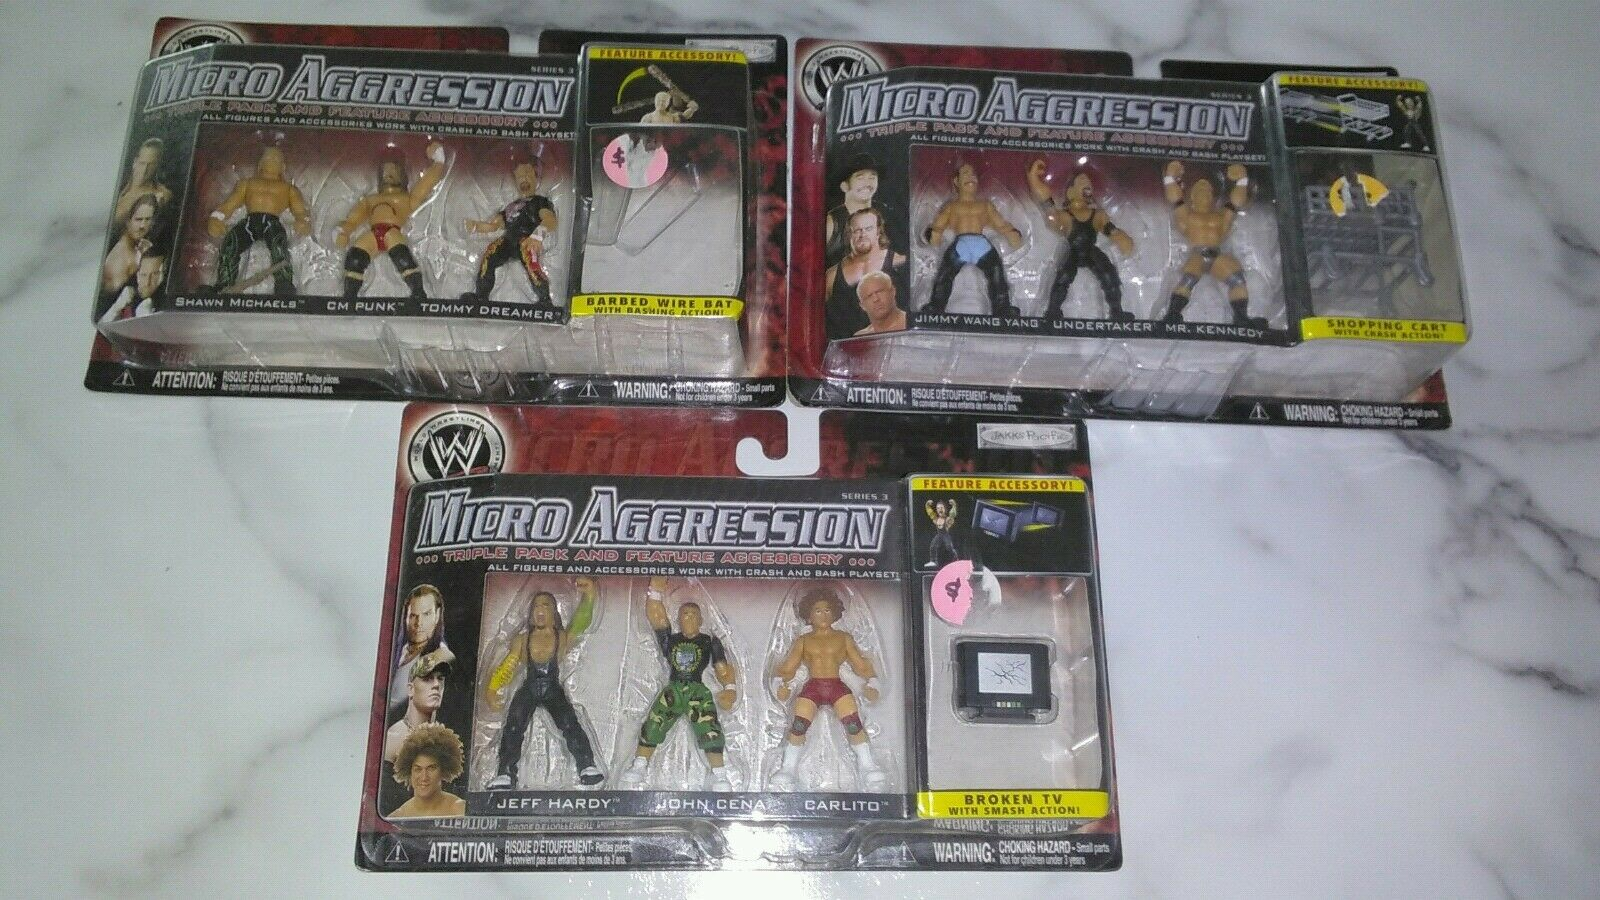 LOT OF 3 NEW JAKKS PACIFIC 2007 Micro Aggression Series (9) Action Figures Total